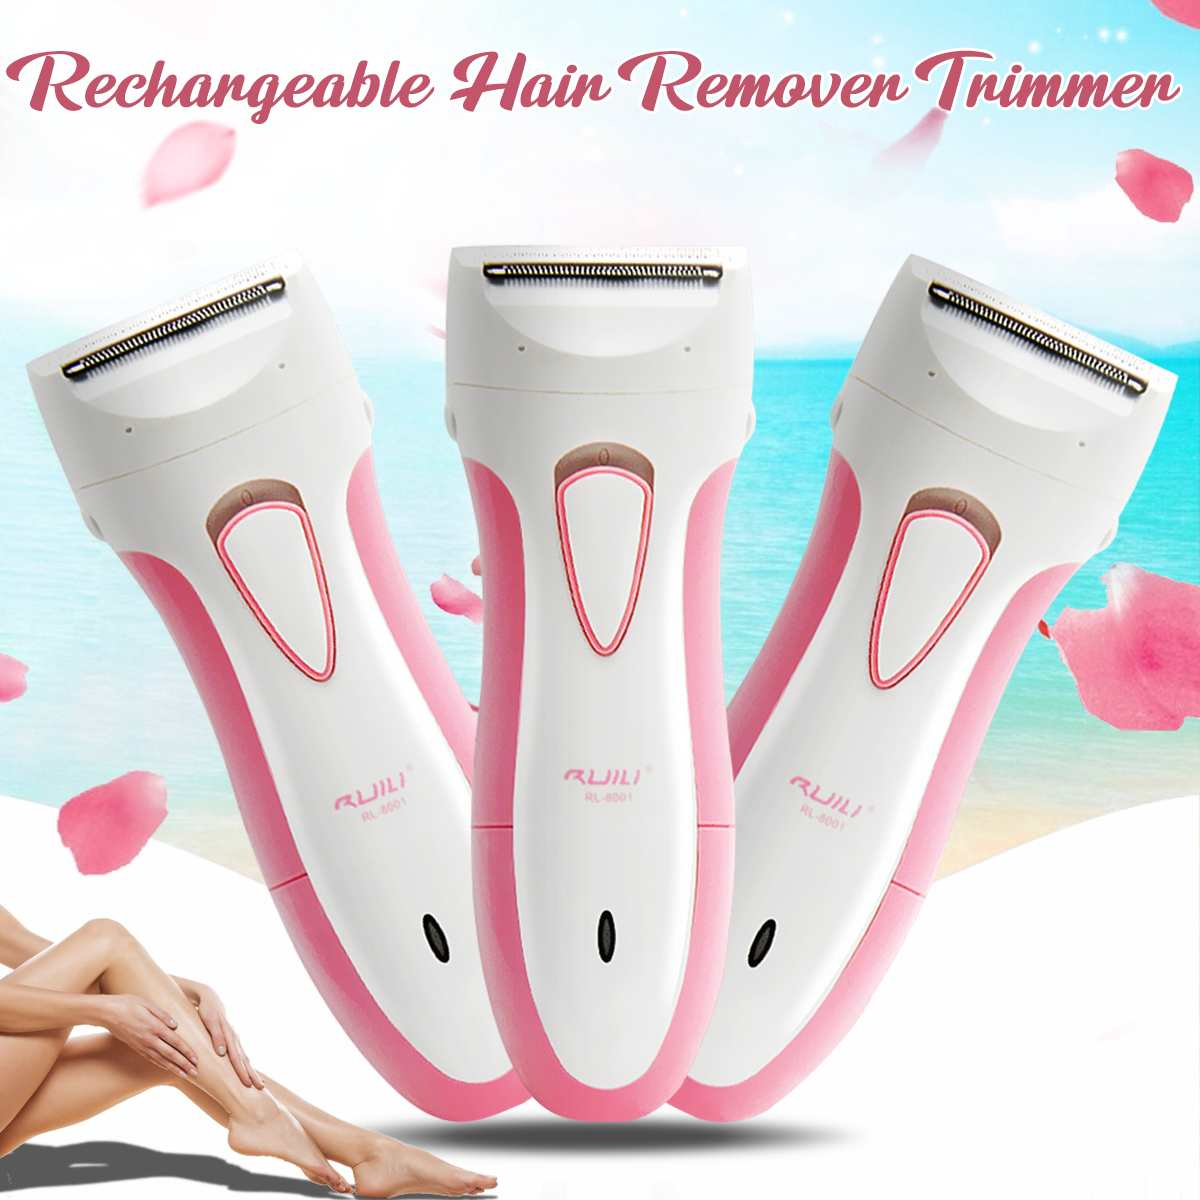 Electric Rechargeable Lady Shaver Women Hair Remover Wet Dry Trimmer Arm Legs Wet Dry Epilator for Bikini Body Underar Painless